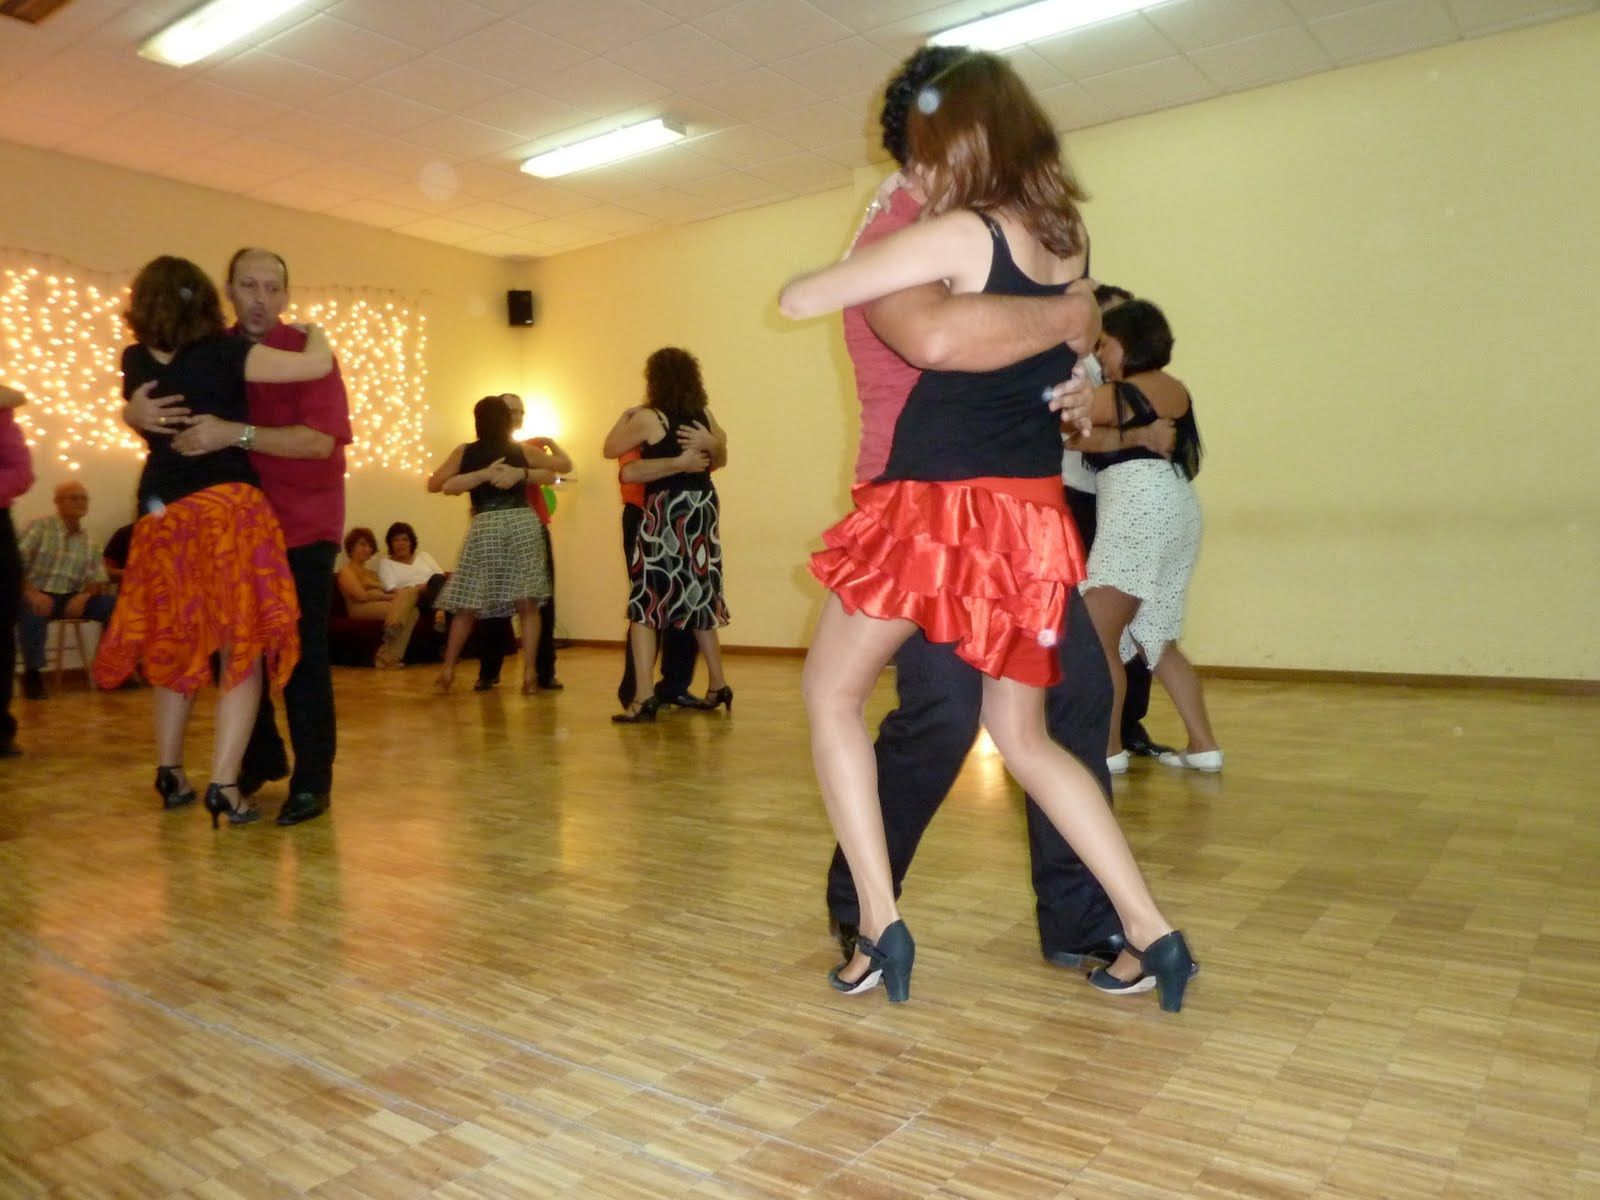 Clases De Baile De Salon En Madrid Bailes Salon Madrid Top Madrid With Bailes Salon Madrid